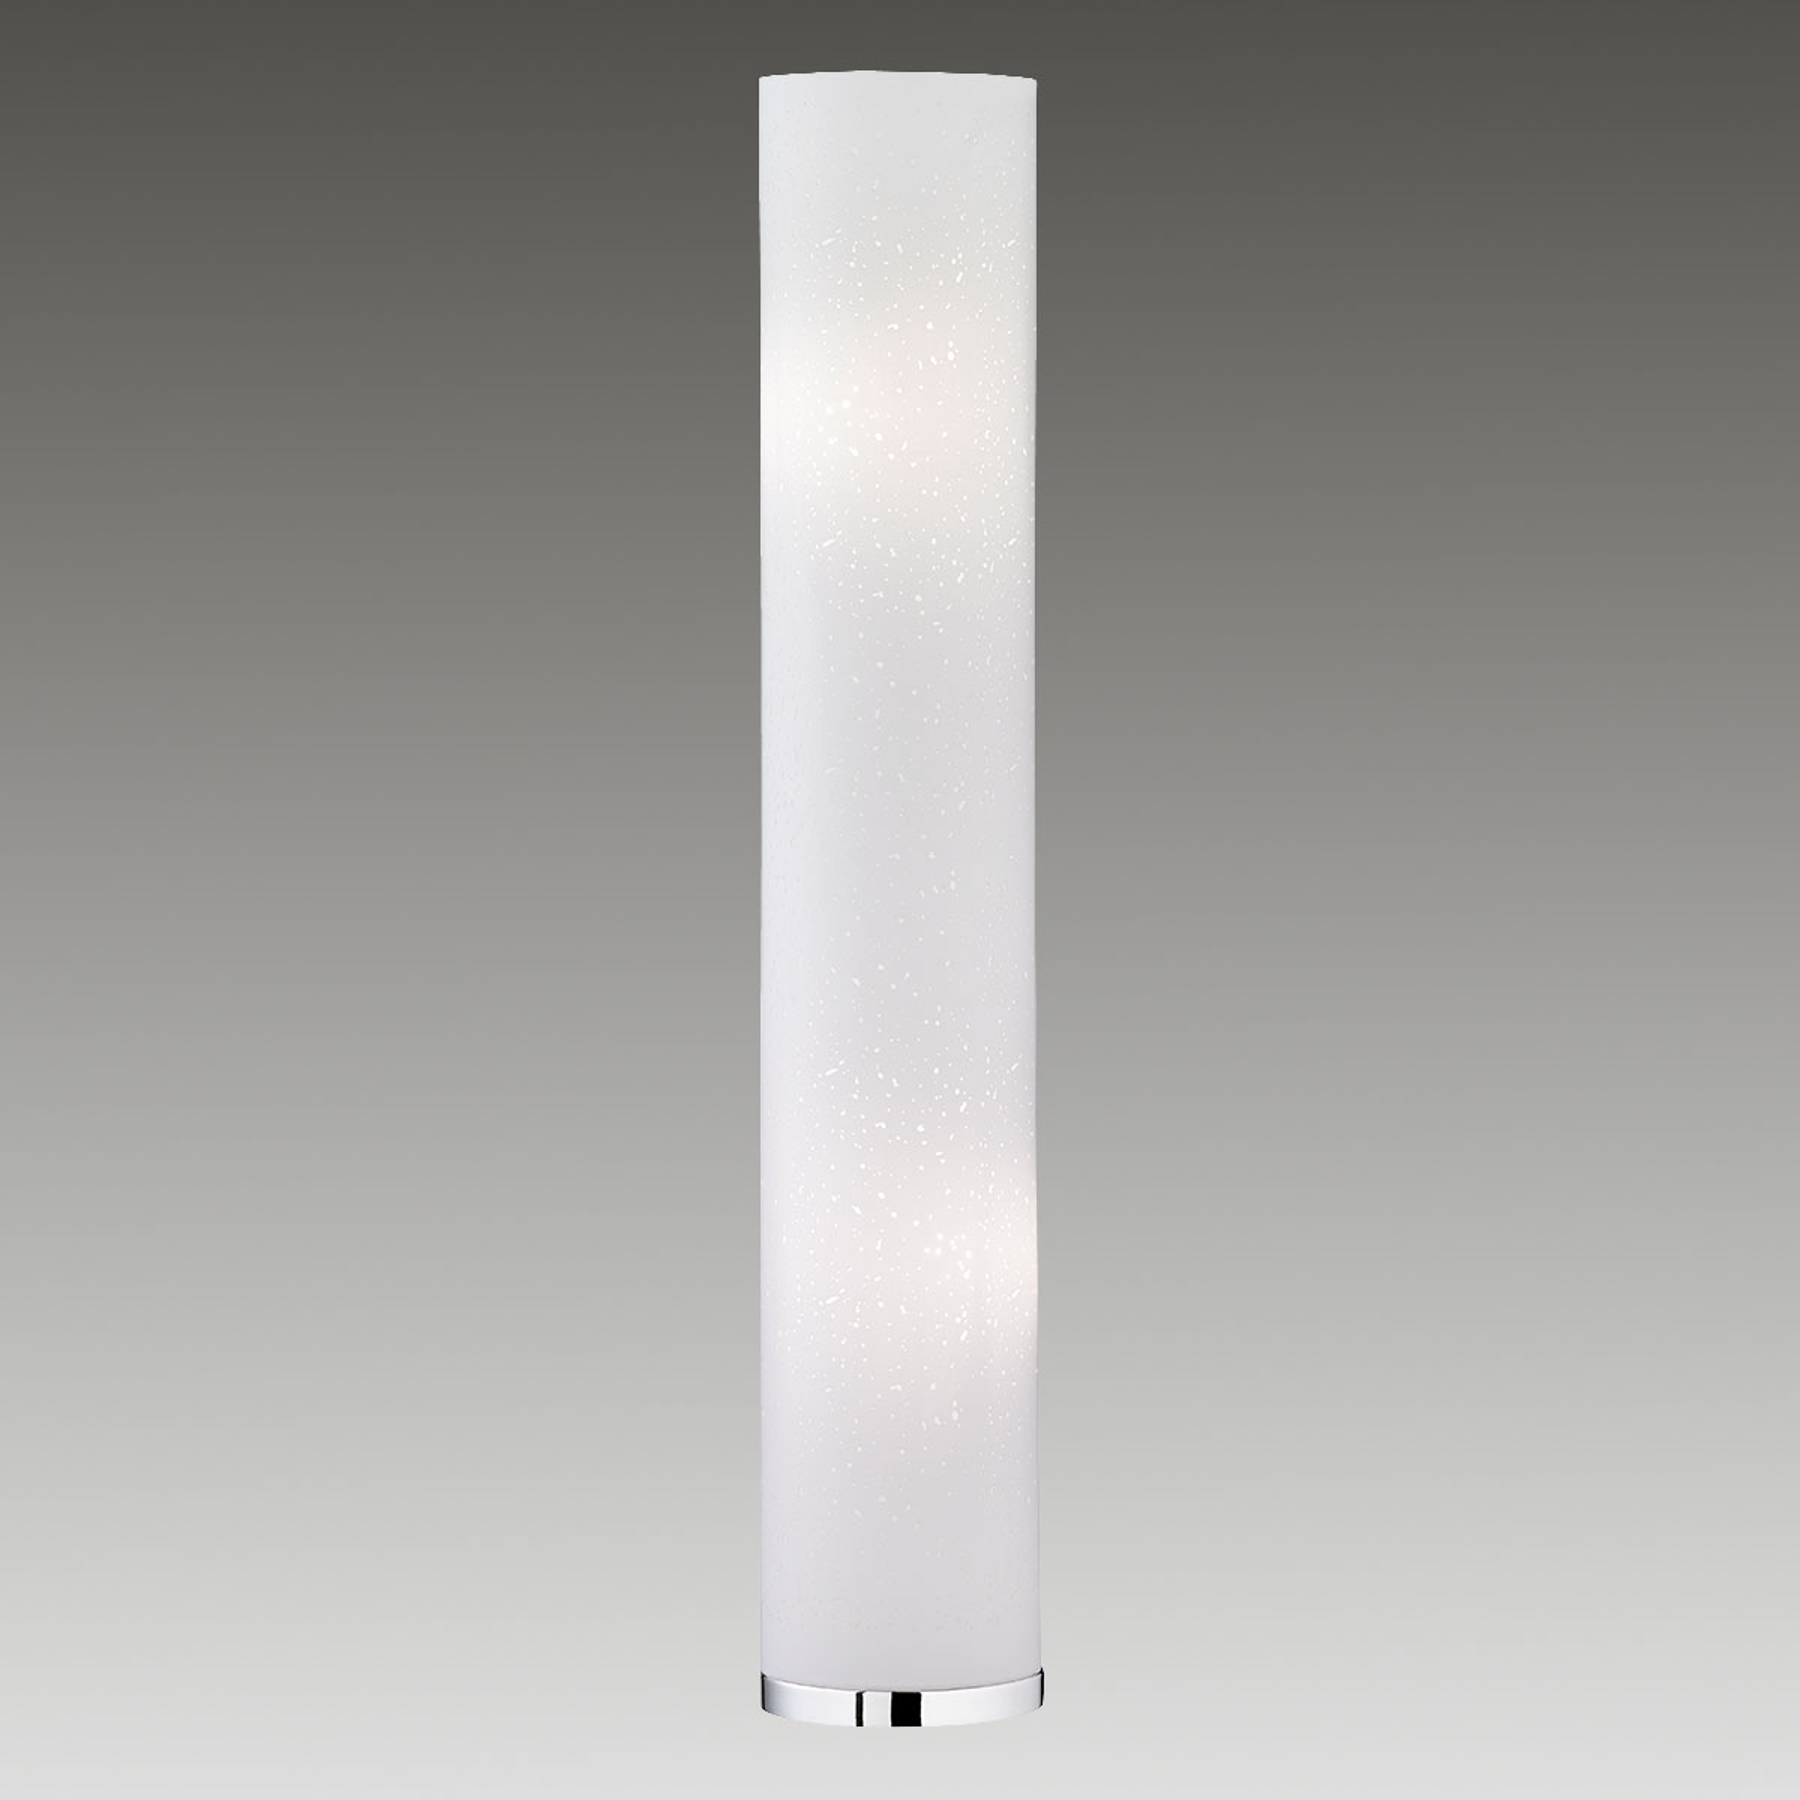 Vloerlamp Thor 110 cm in wit